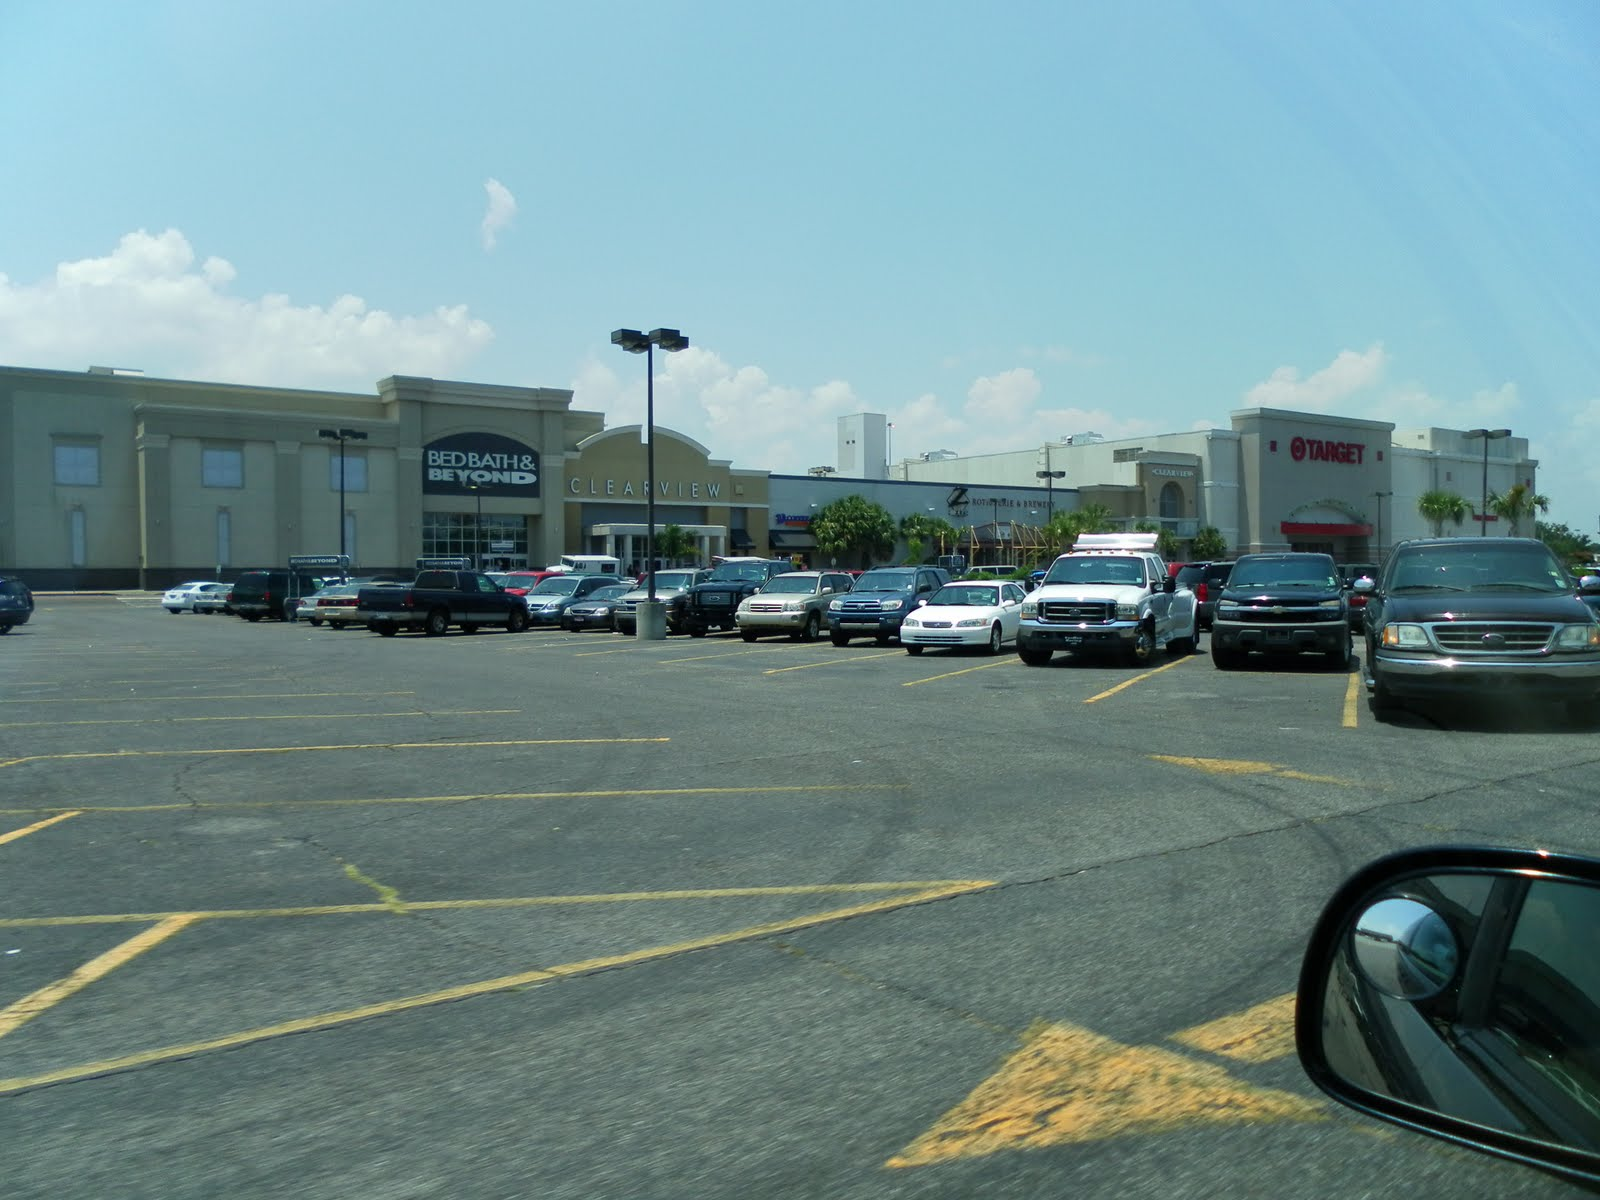 Bed bath and beyond beaumont - Target Bed Bath And Beyond And The Main Mall Entrance